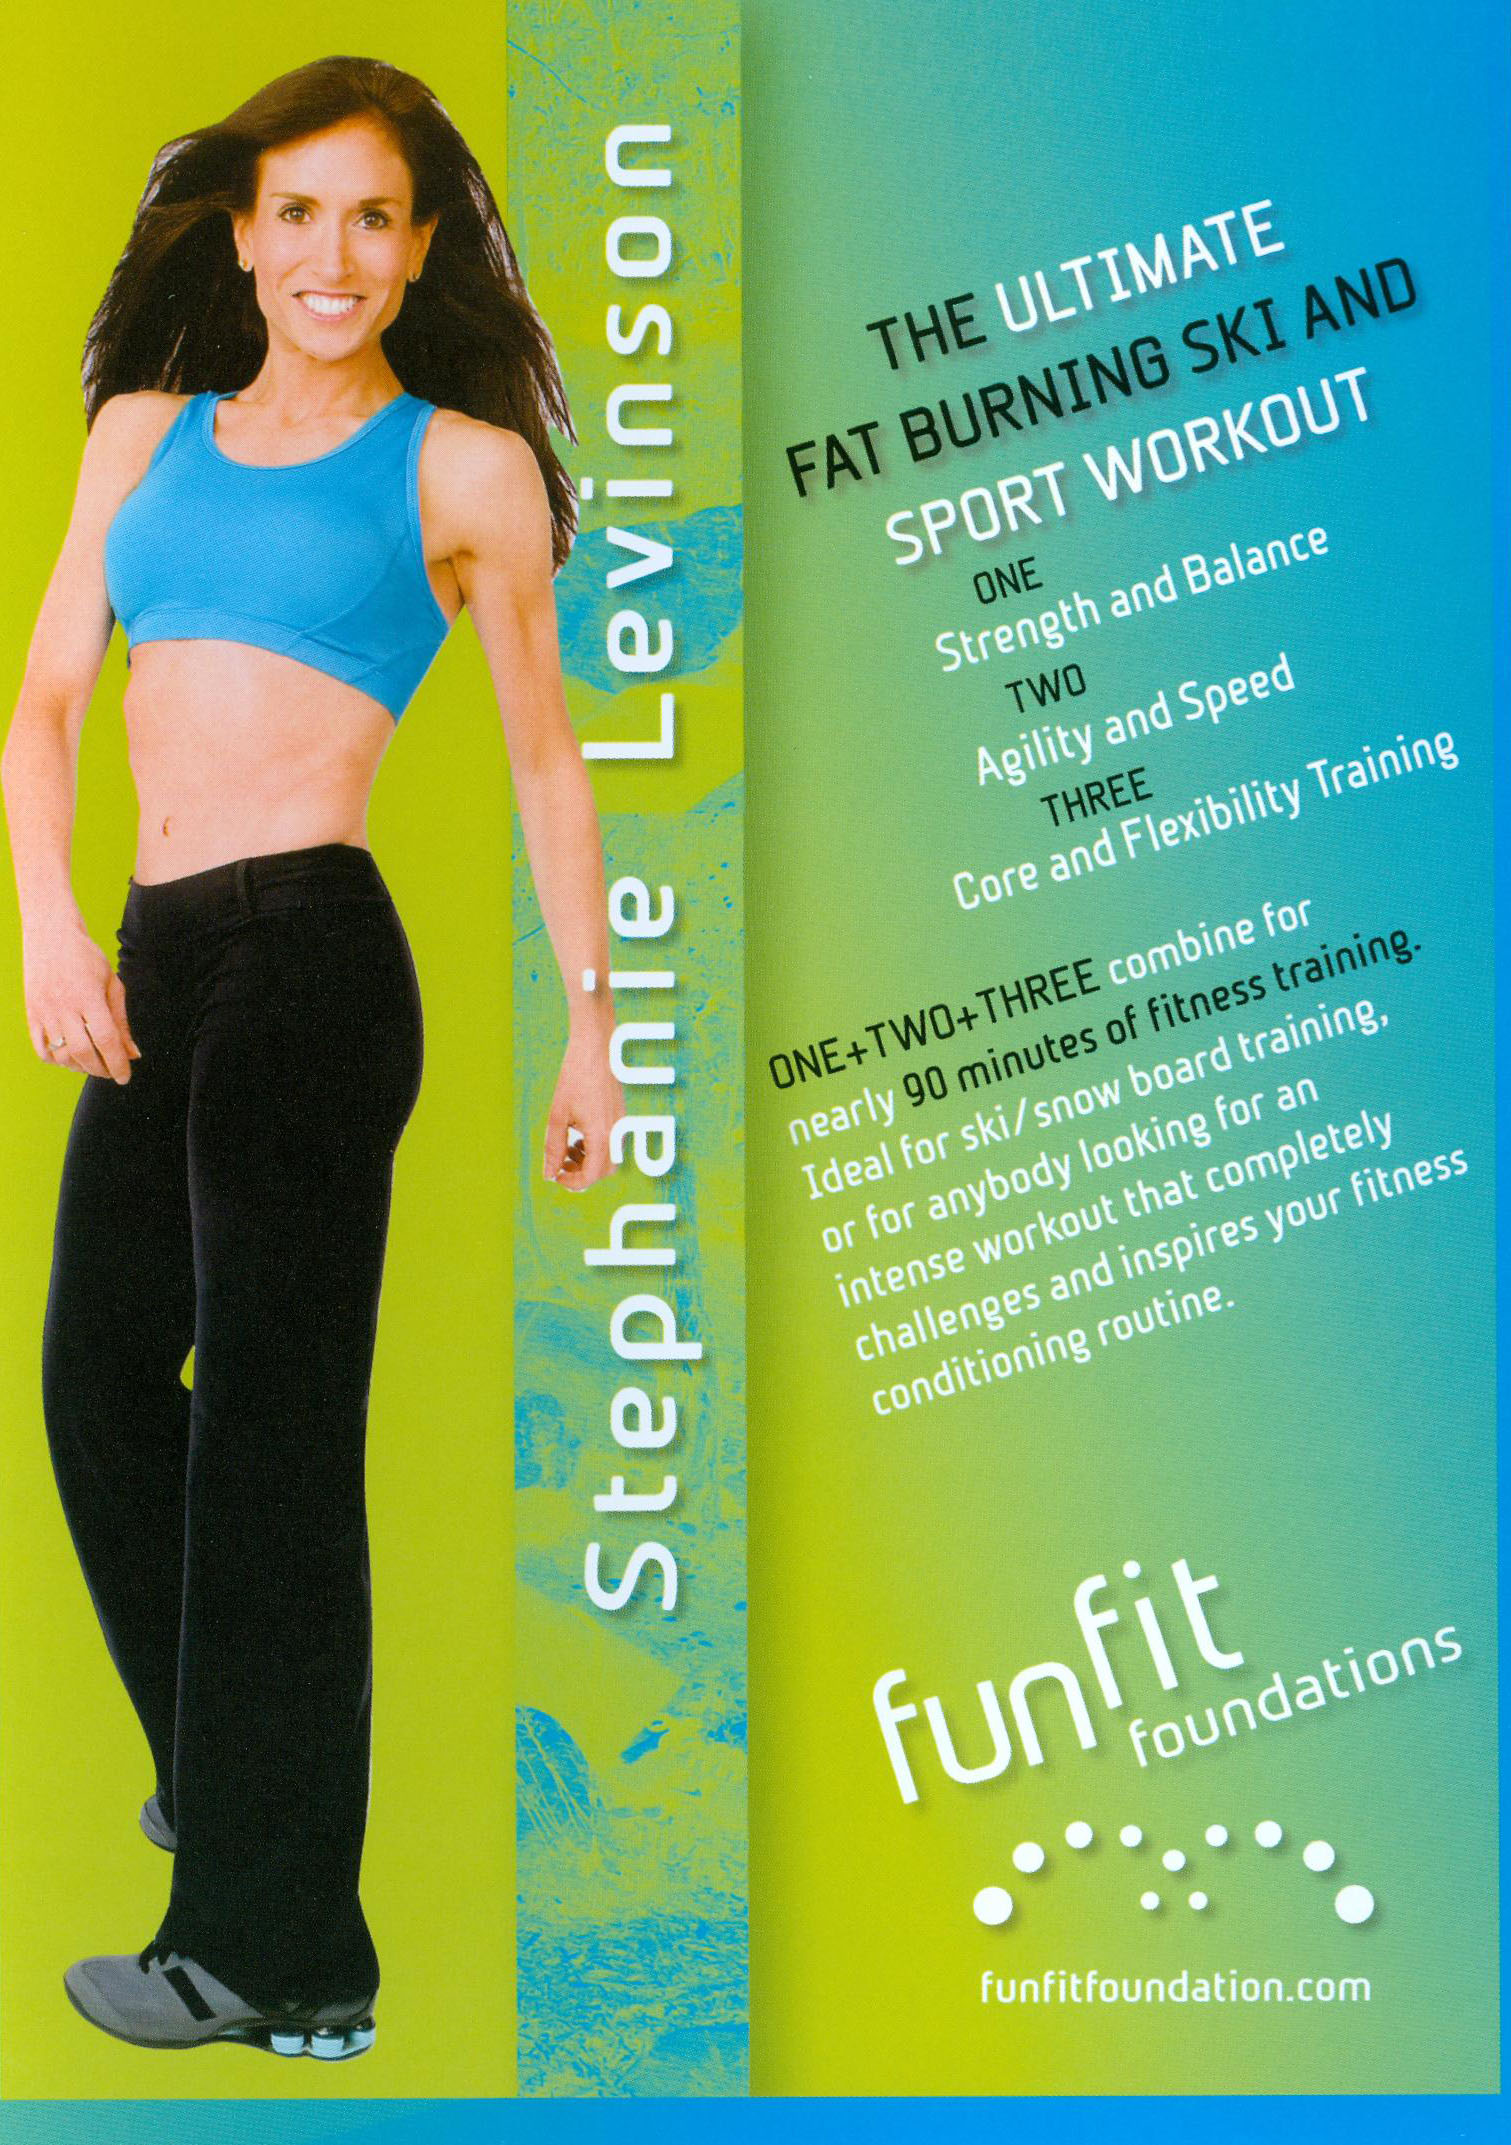 Stephanie Levinson: The Ultimate Fat Burning Ski and Sport Workout